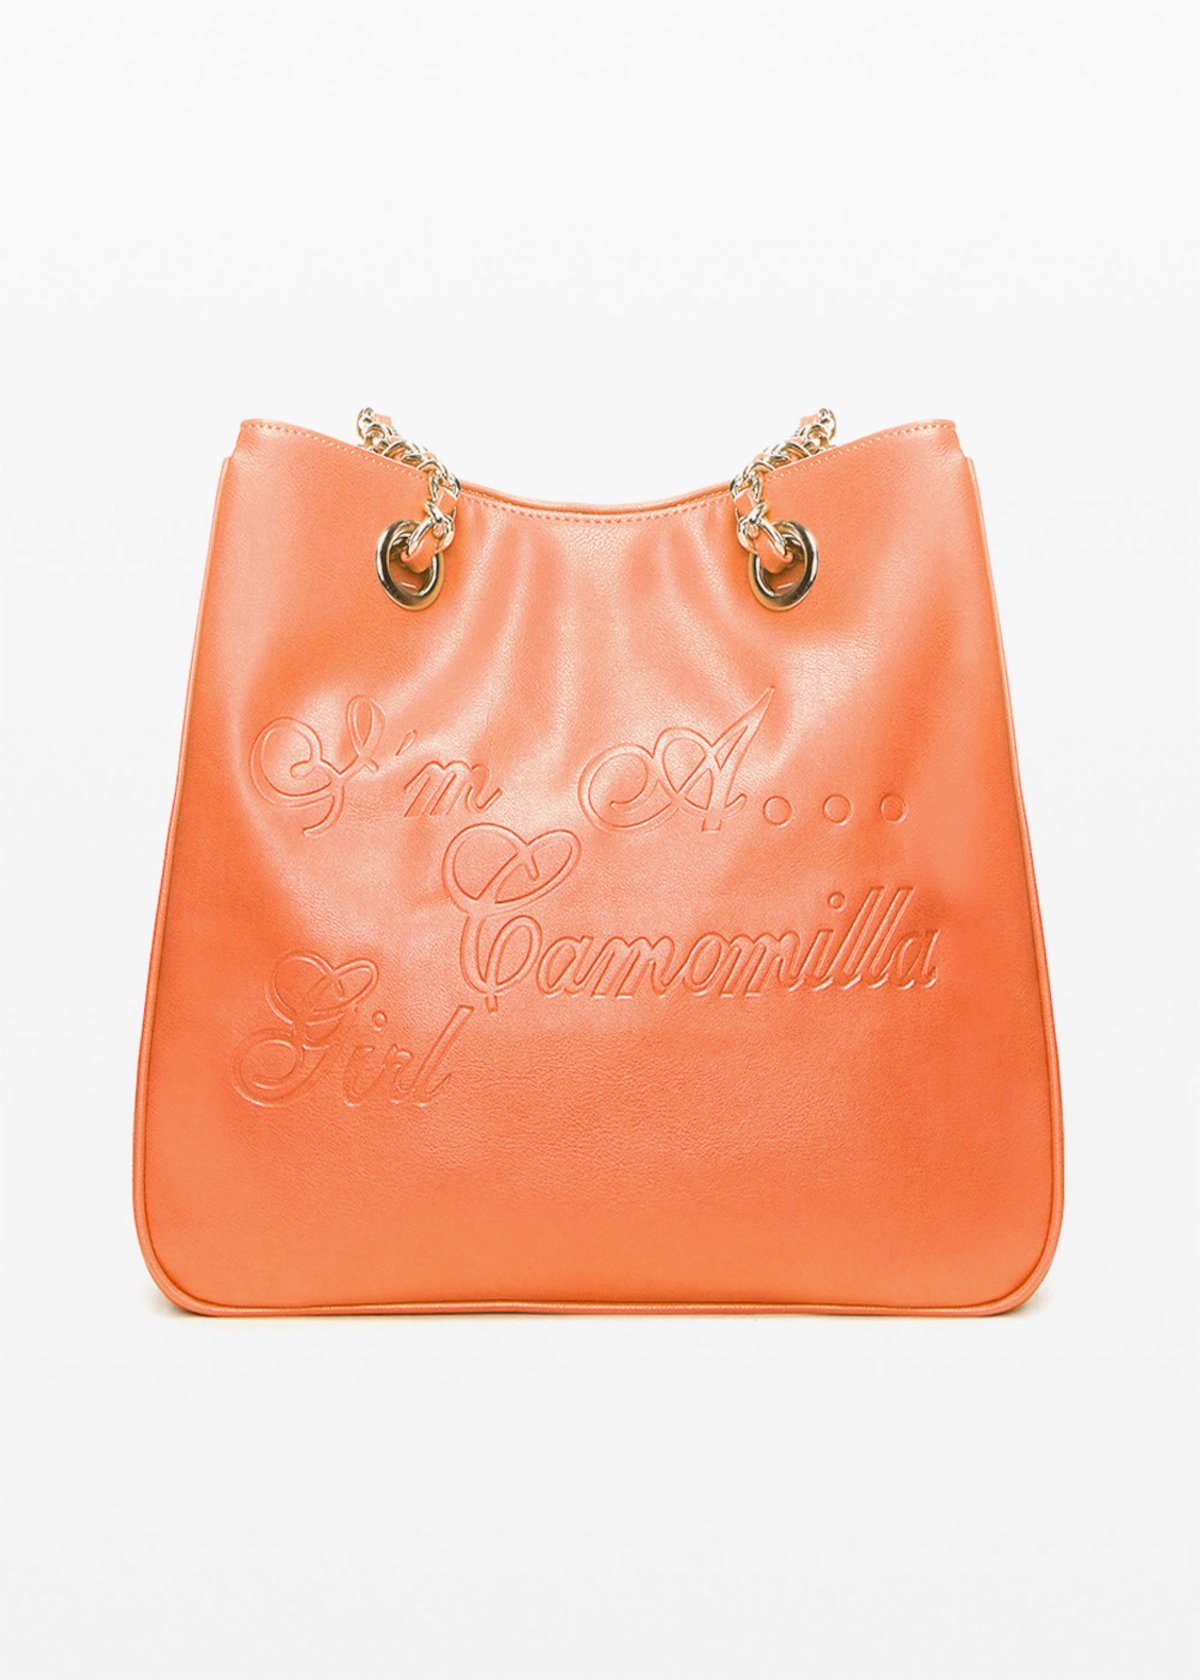 Minicamog faux leather shopping bag with embossed logo - Mandarino - Woman